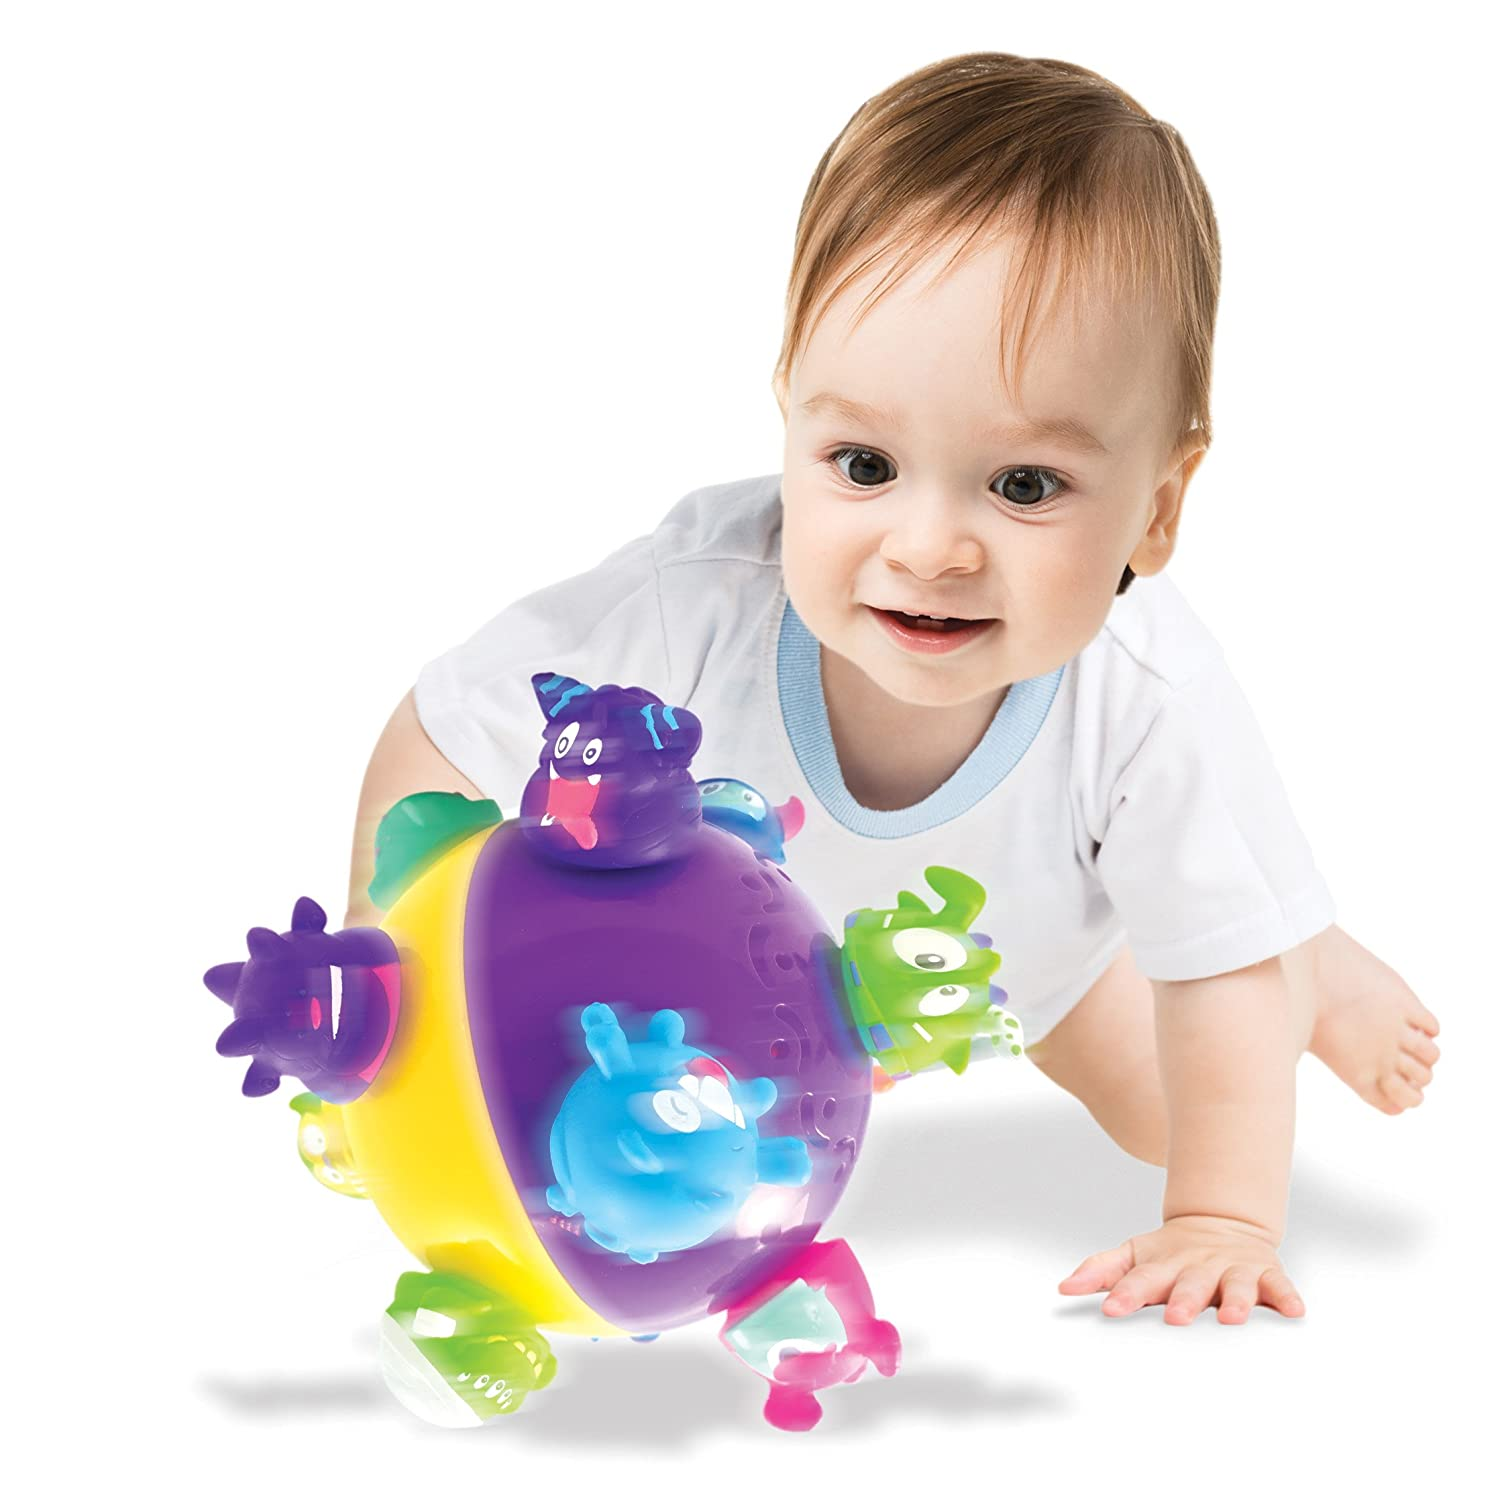 Chuckle Ball Motorised Moving Toddler Baby Activity Game Toy